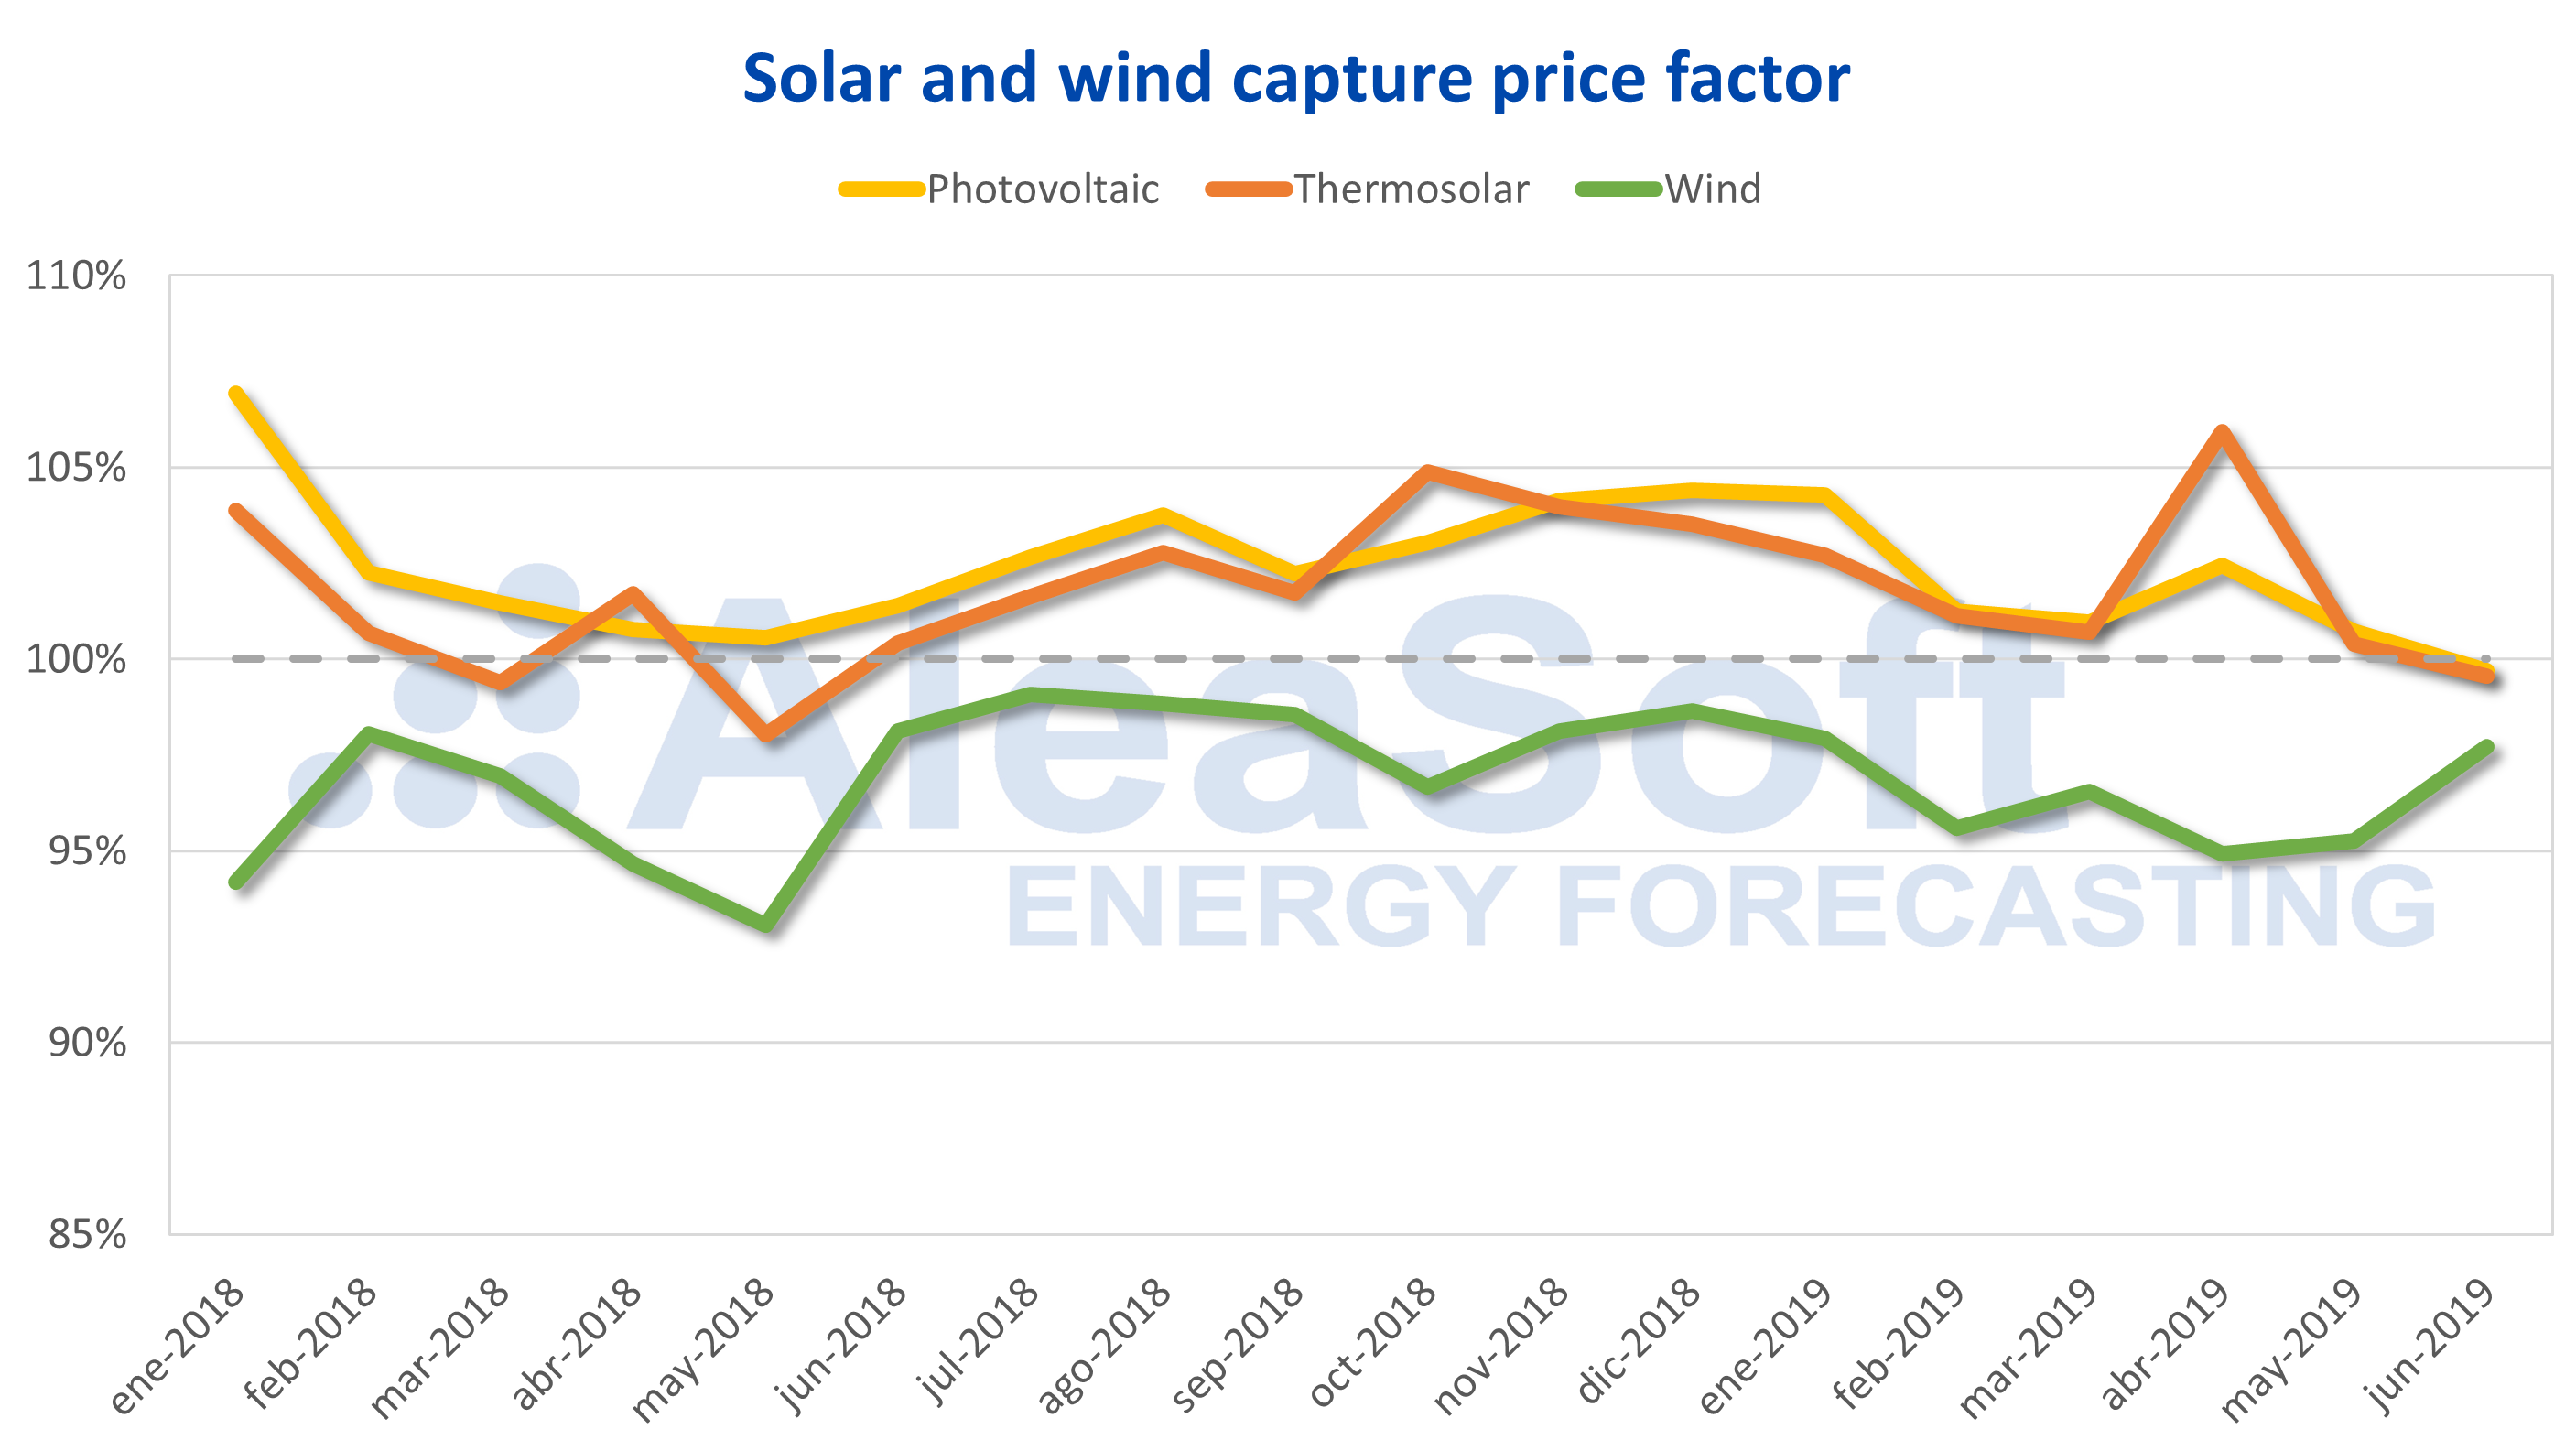 AleaSoft - Solar photovoltaic thermosolar wind energy capture price factor